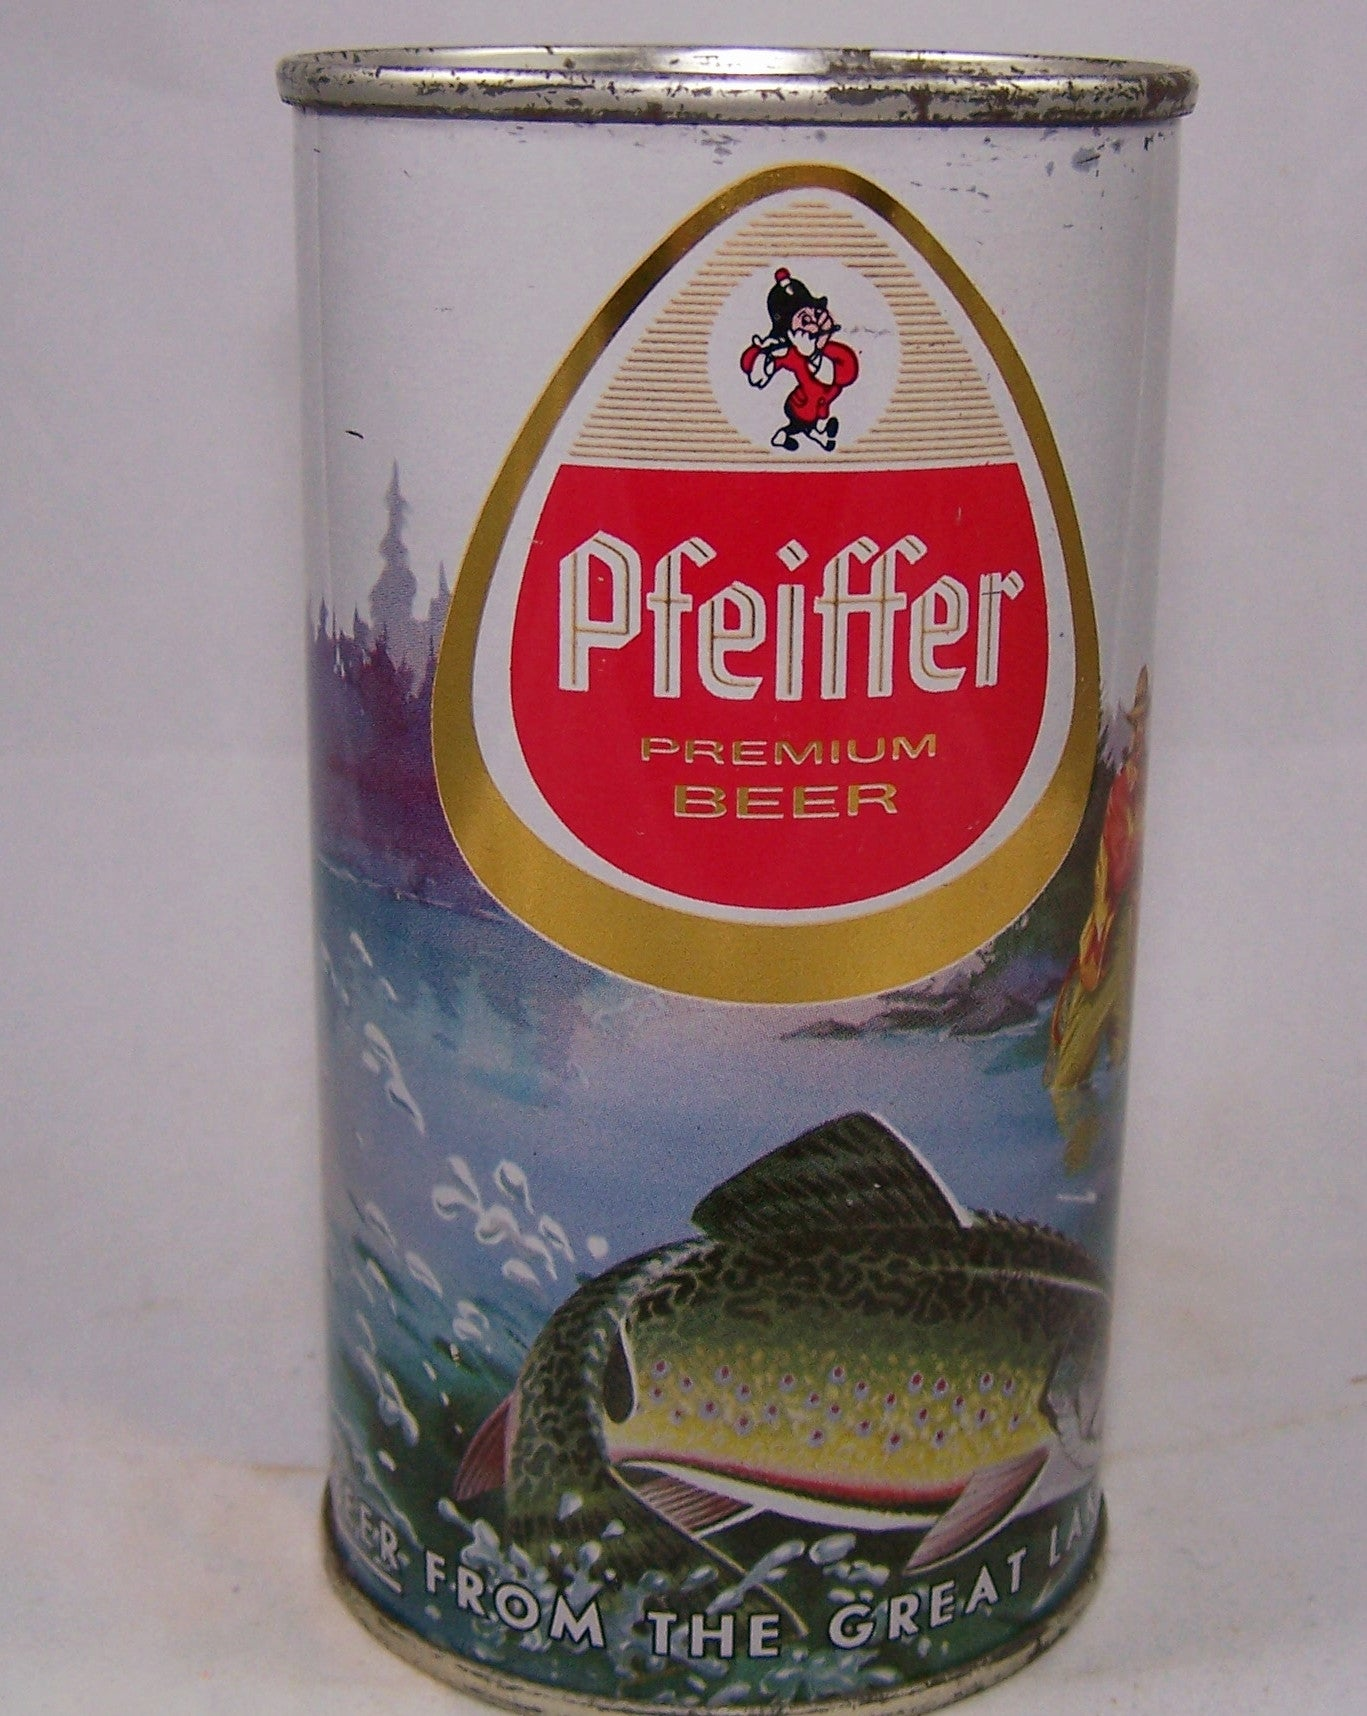 Pfeiffer (metallic) Premium Beer, USBC 114-14, Grade 1 to 1/1+ Sold on 01/13/16